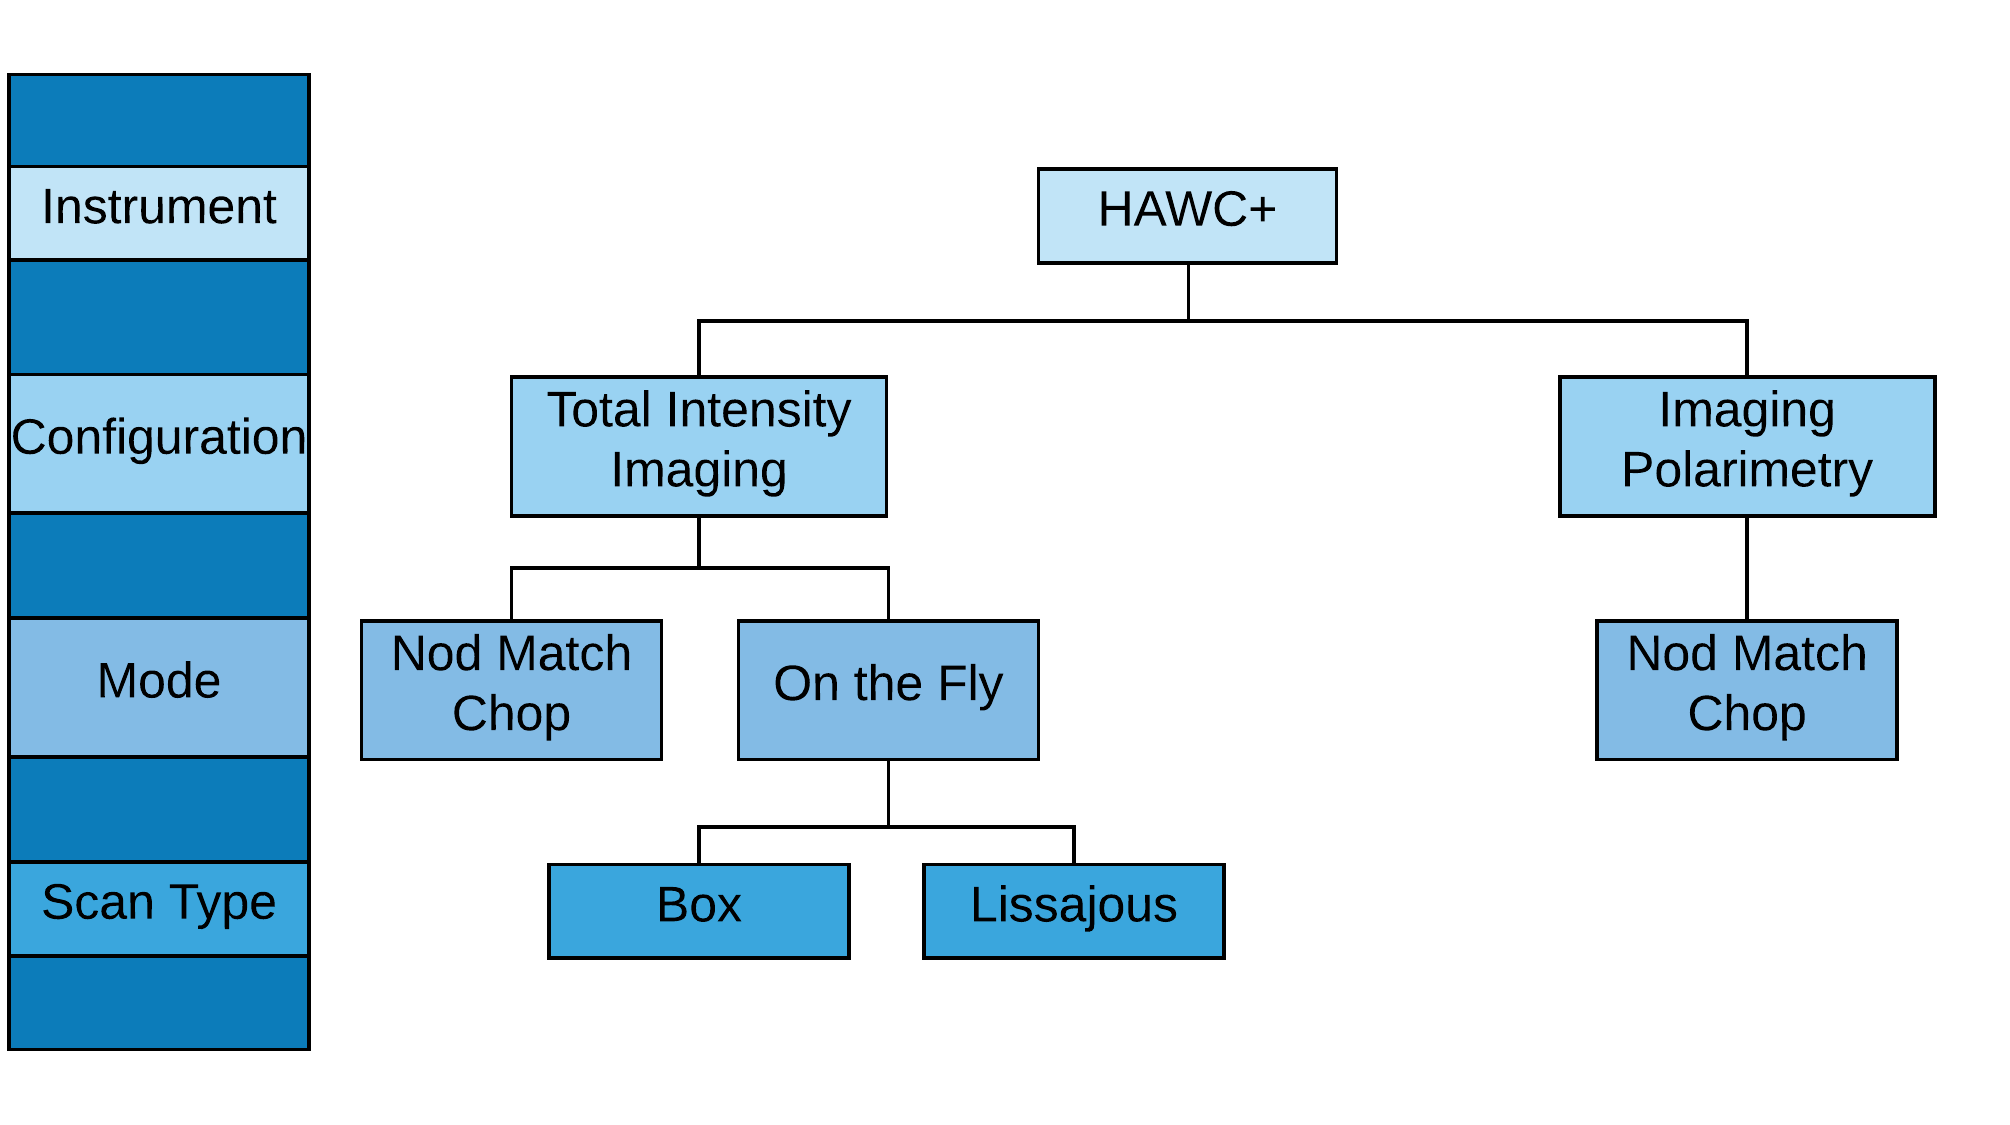 HAWC plus configuration and mode flowchart diagram